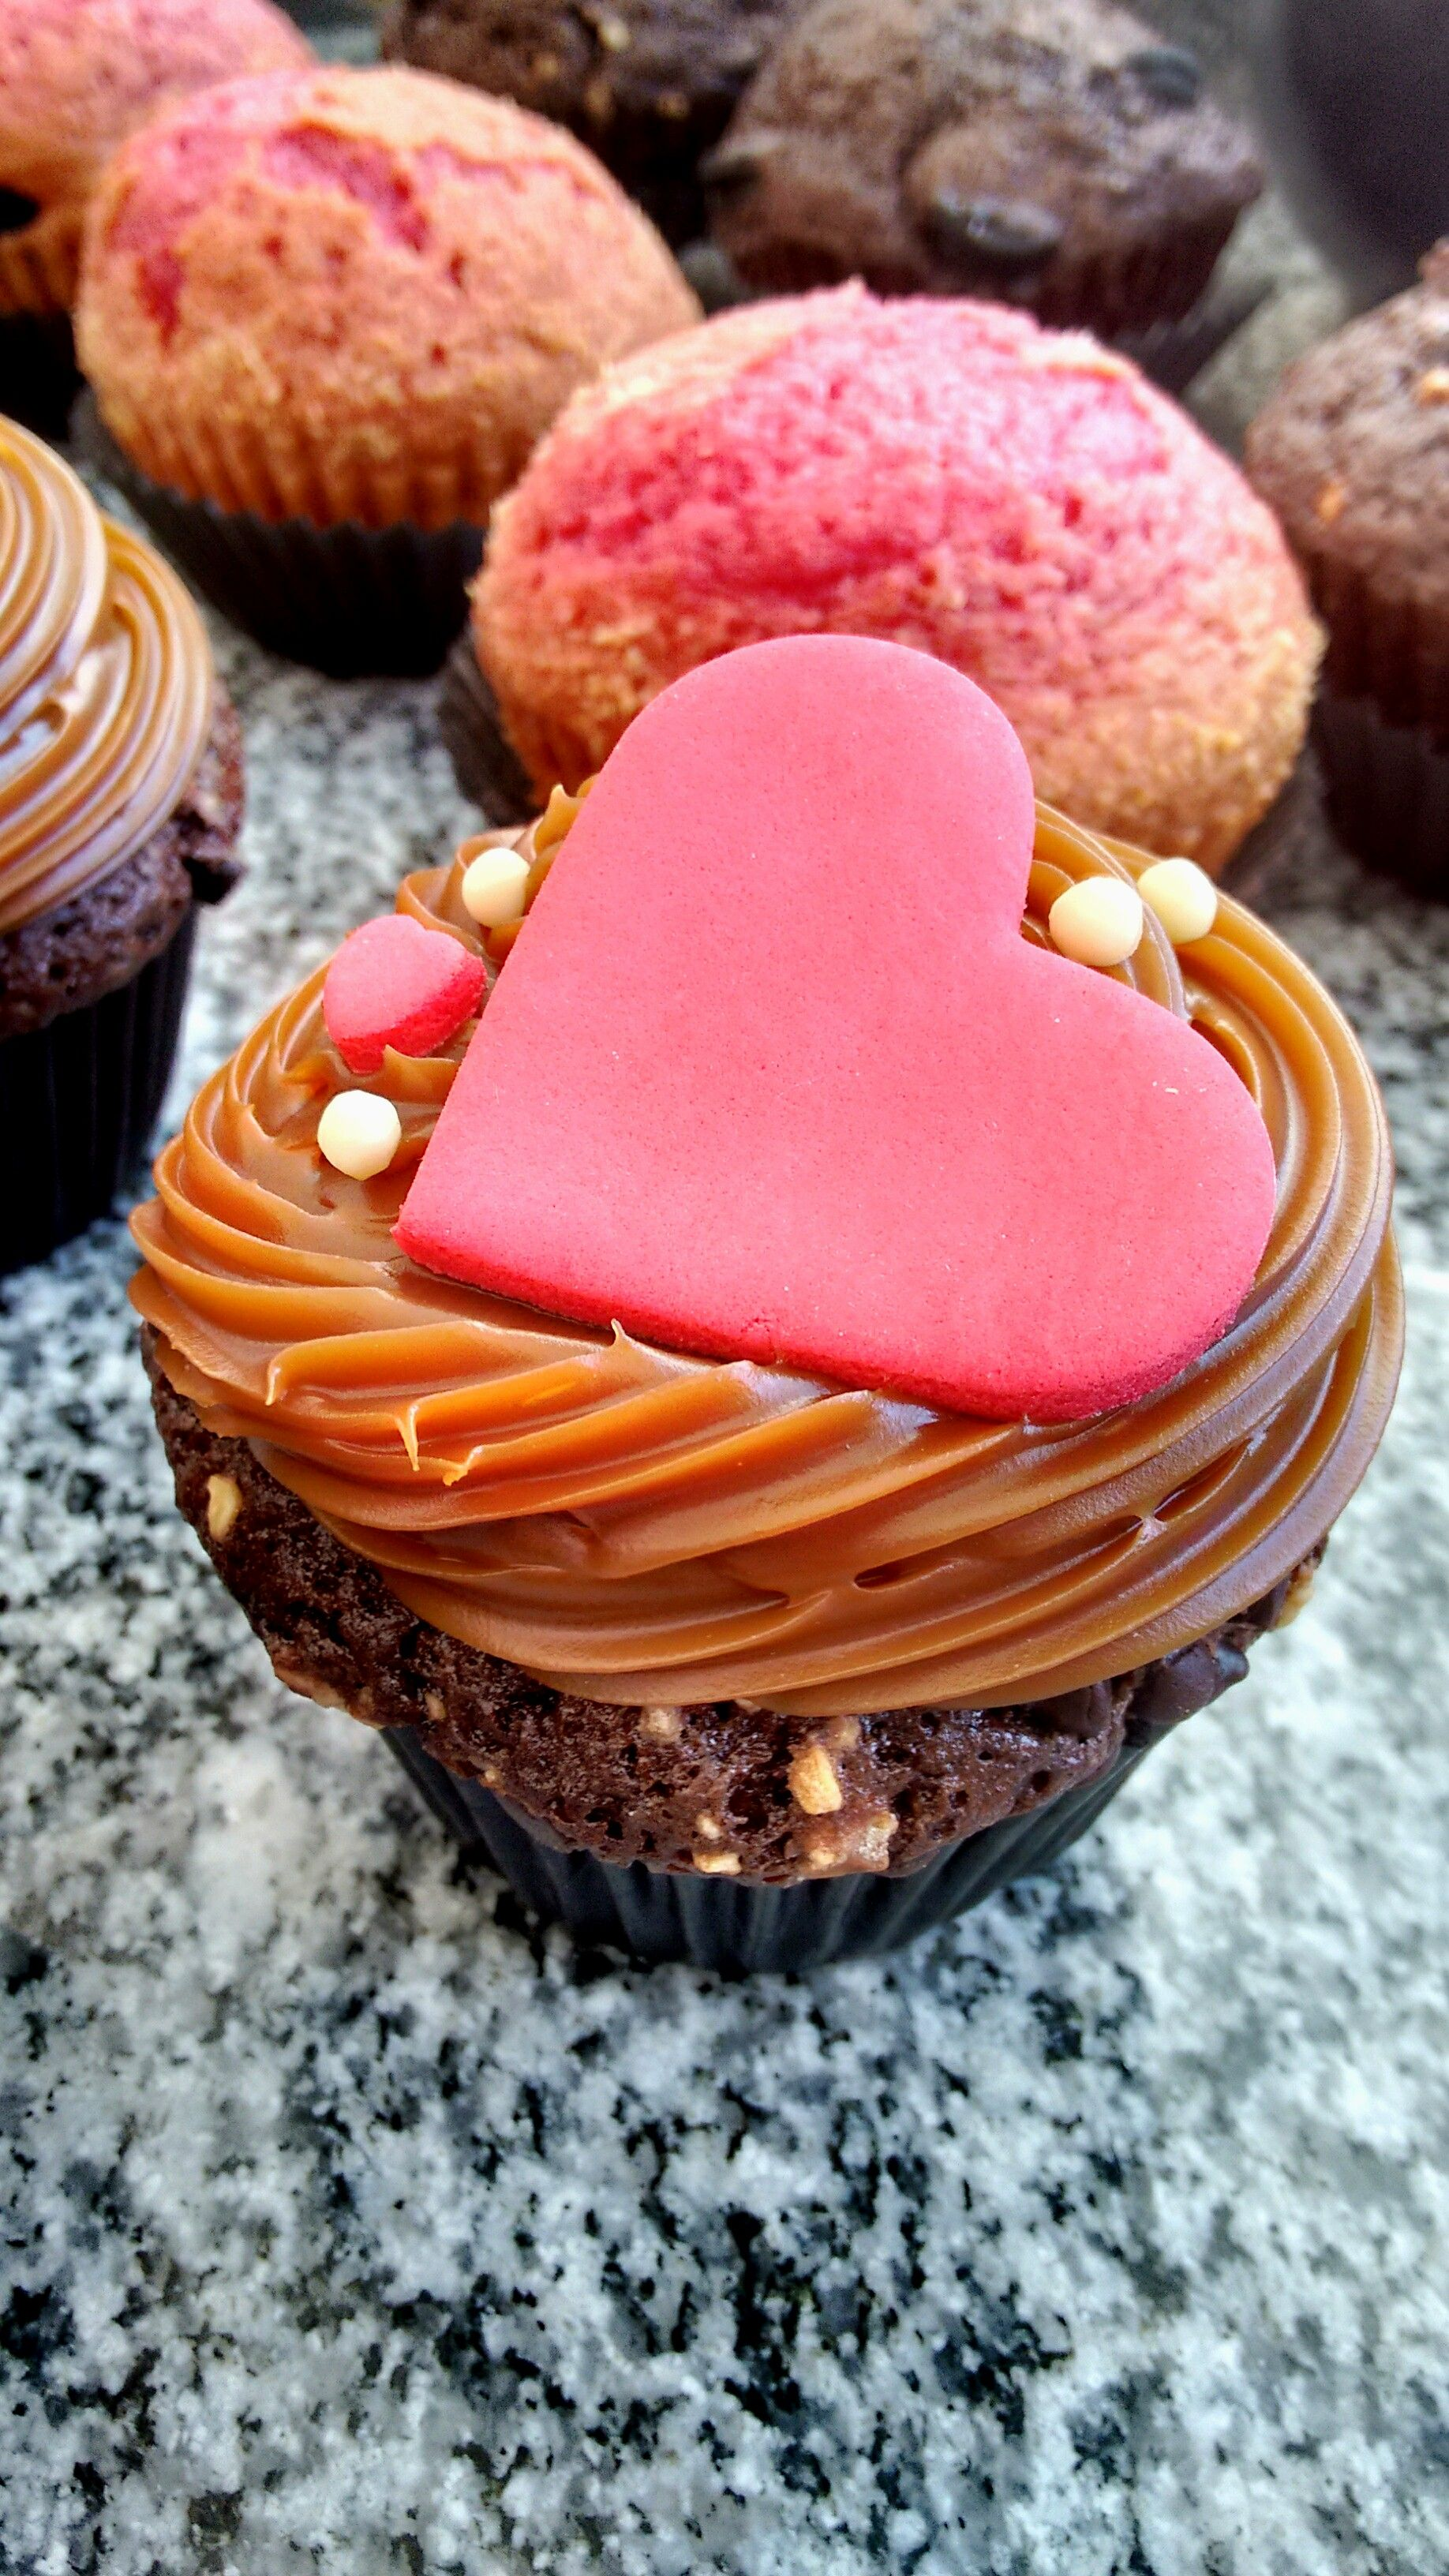 Cupcakes for Valentine's Day <3